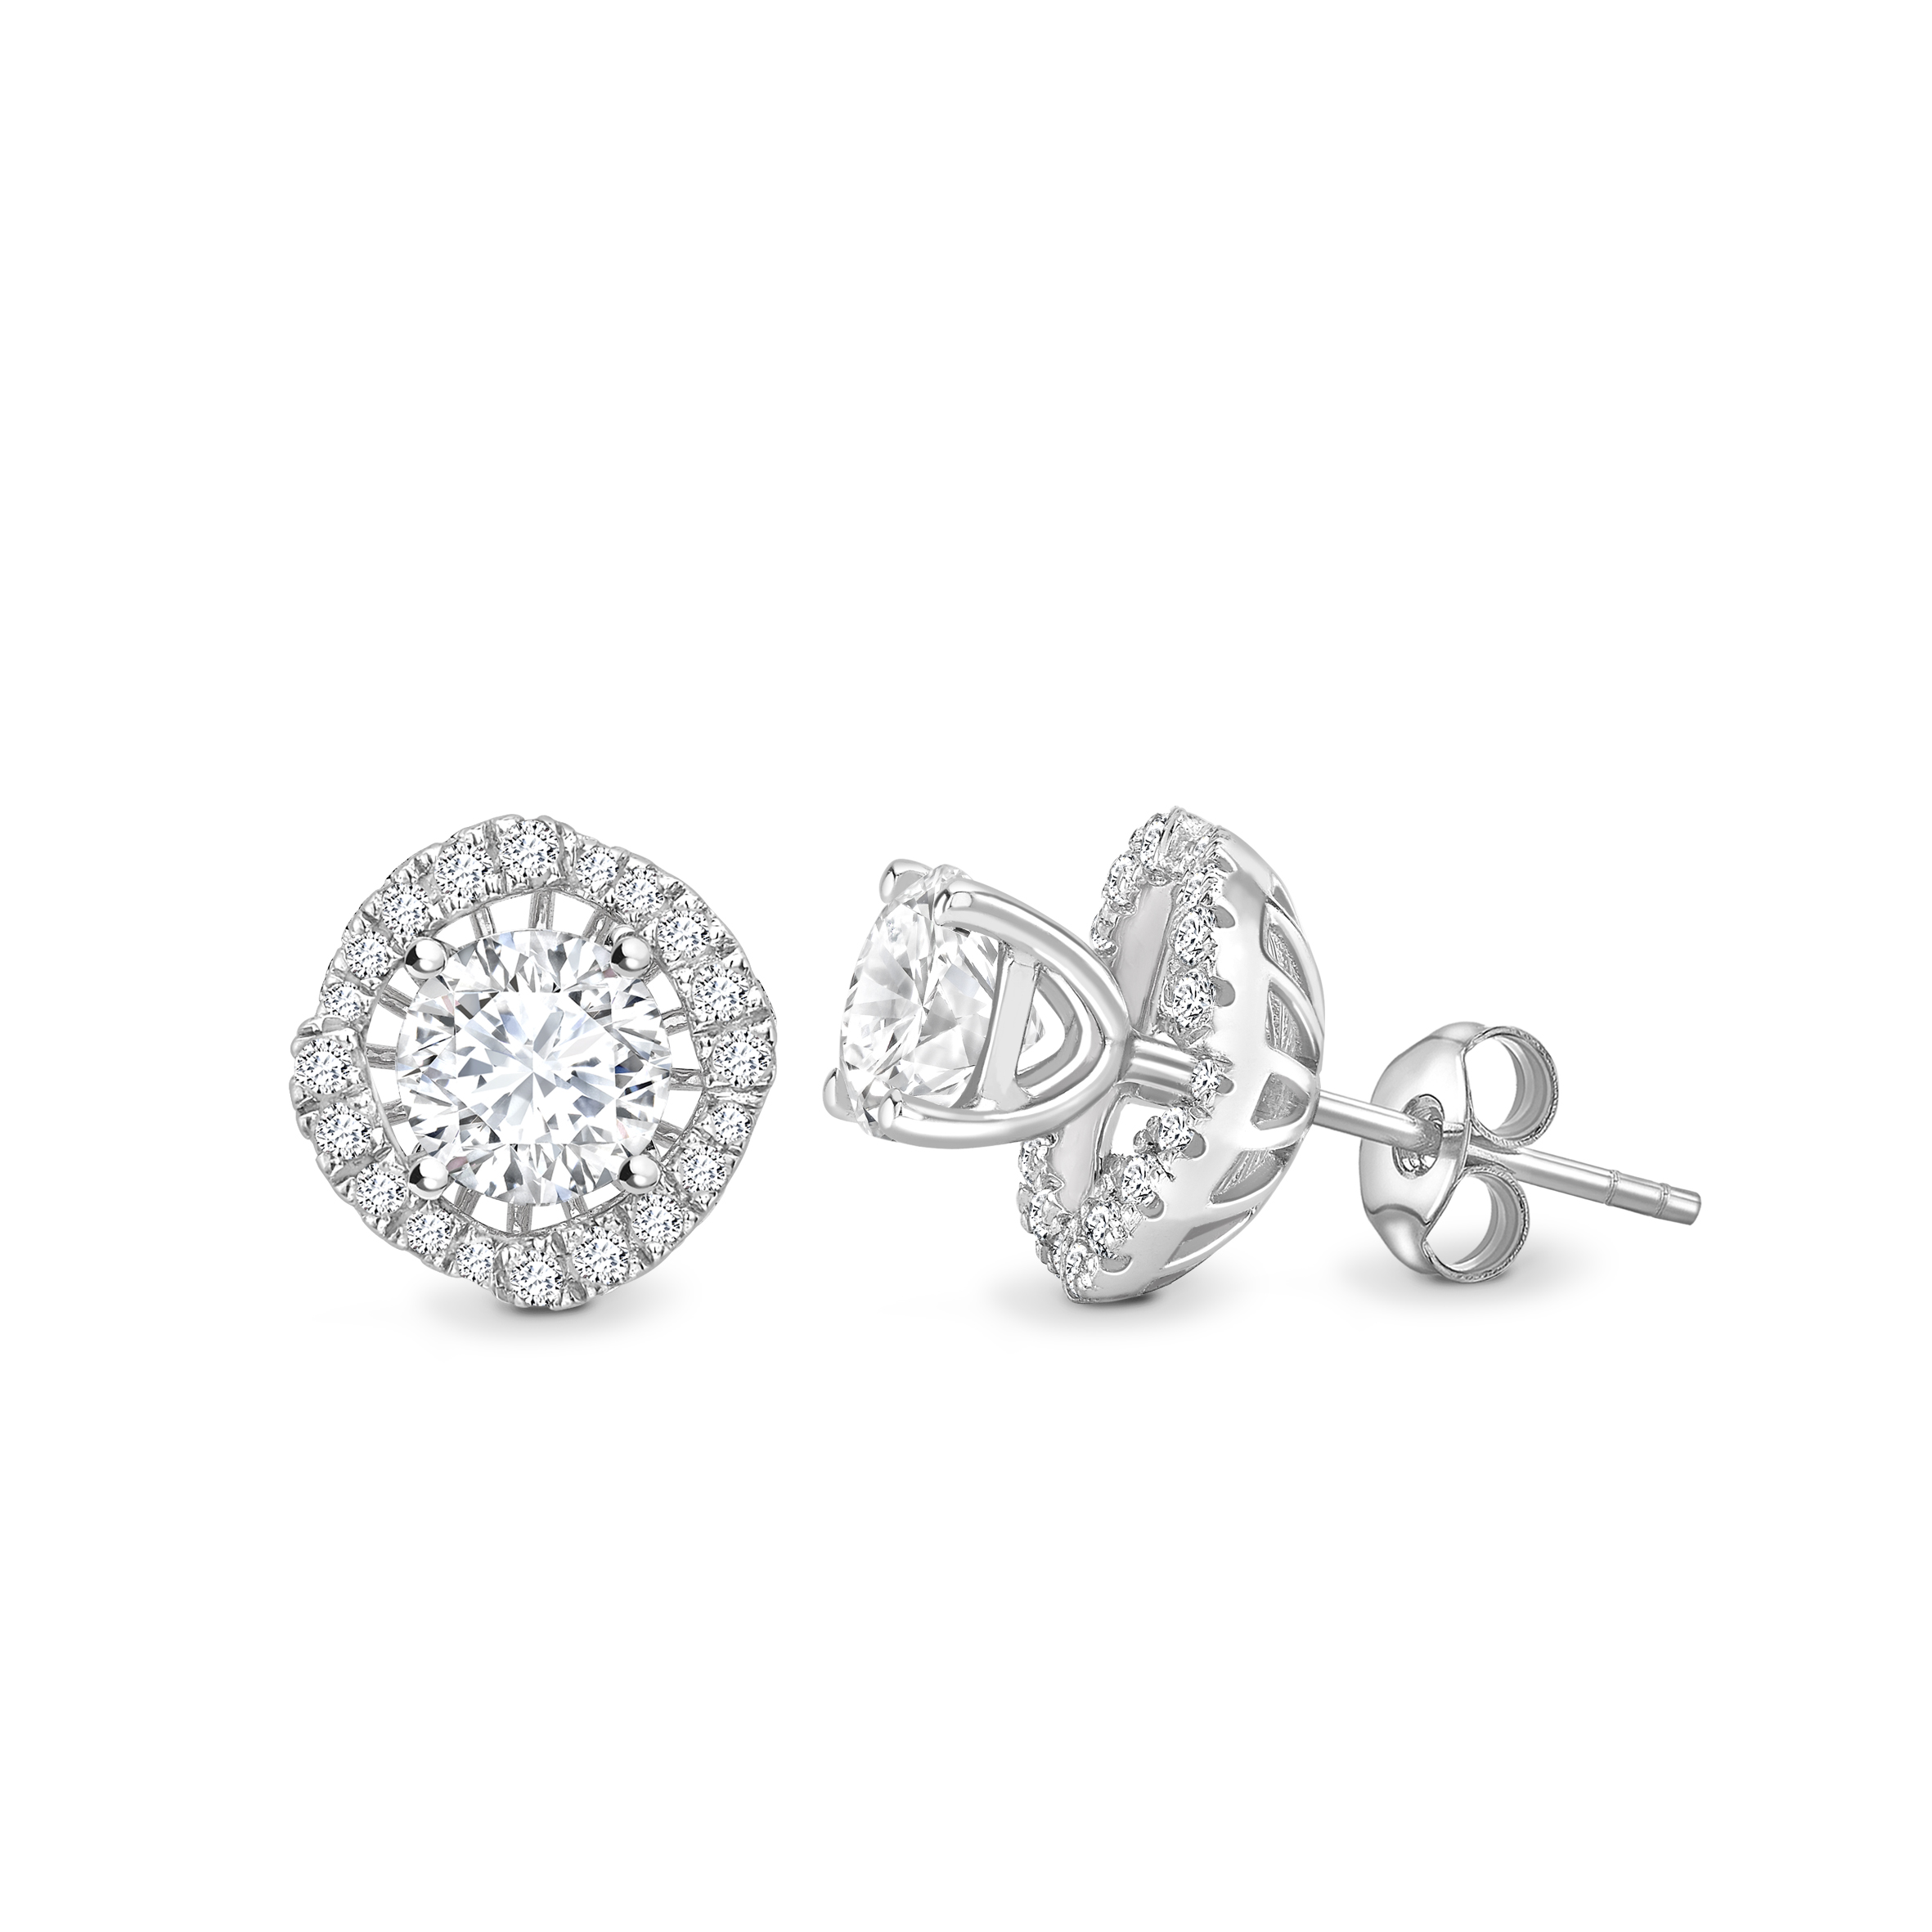 18ct White Gold Halo Set Earrings 1.50 Carats